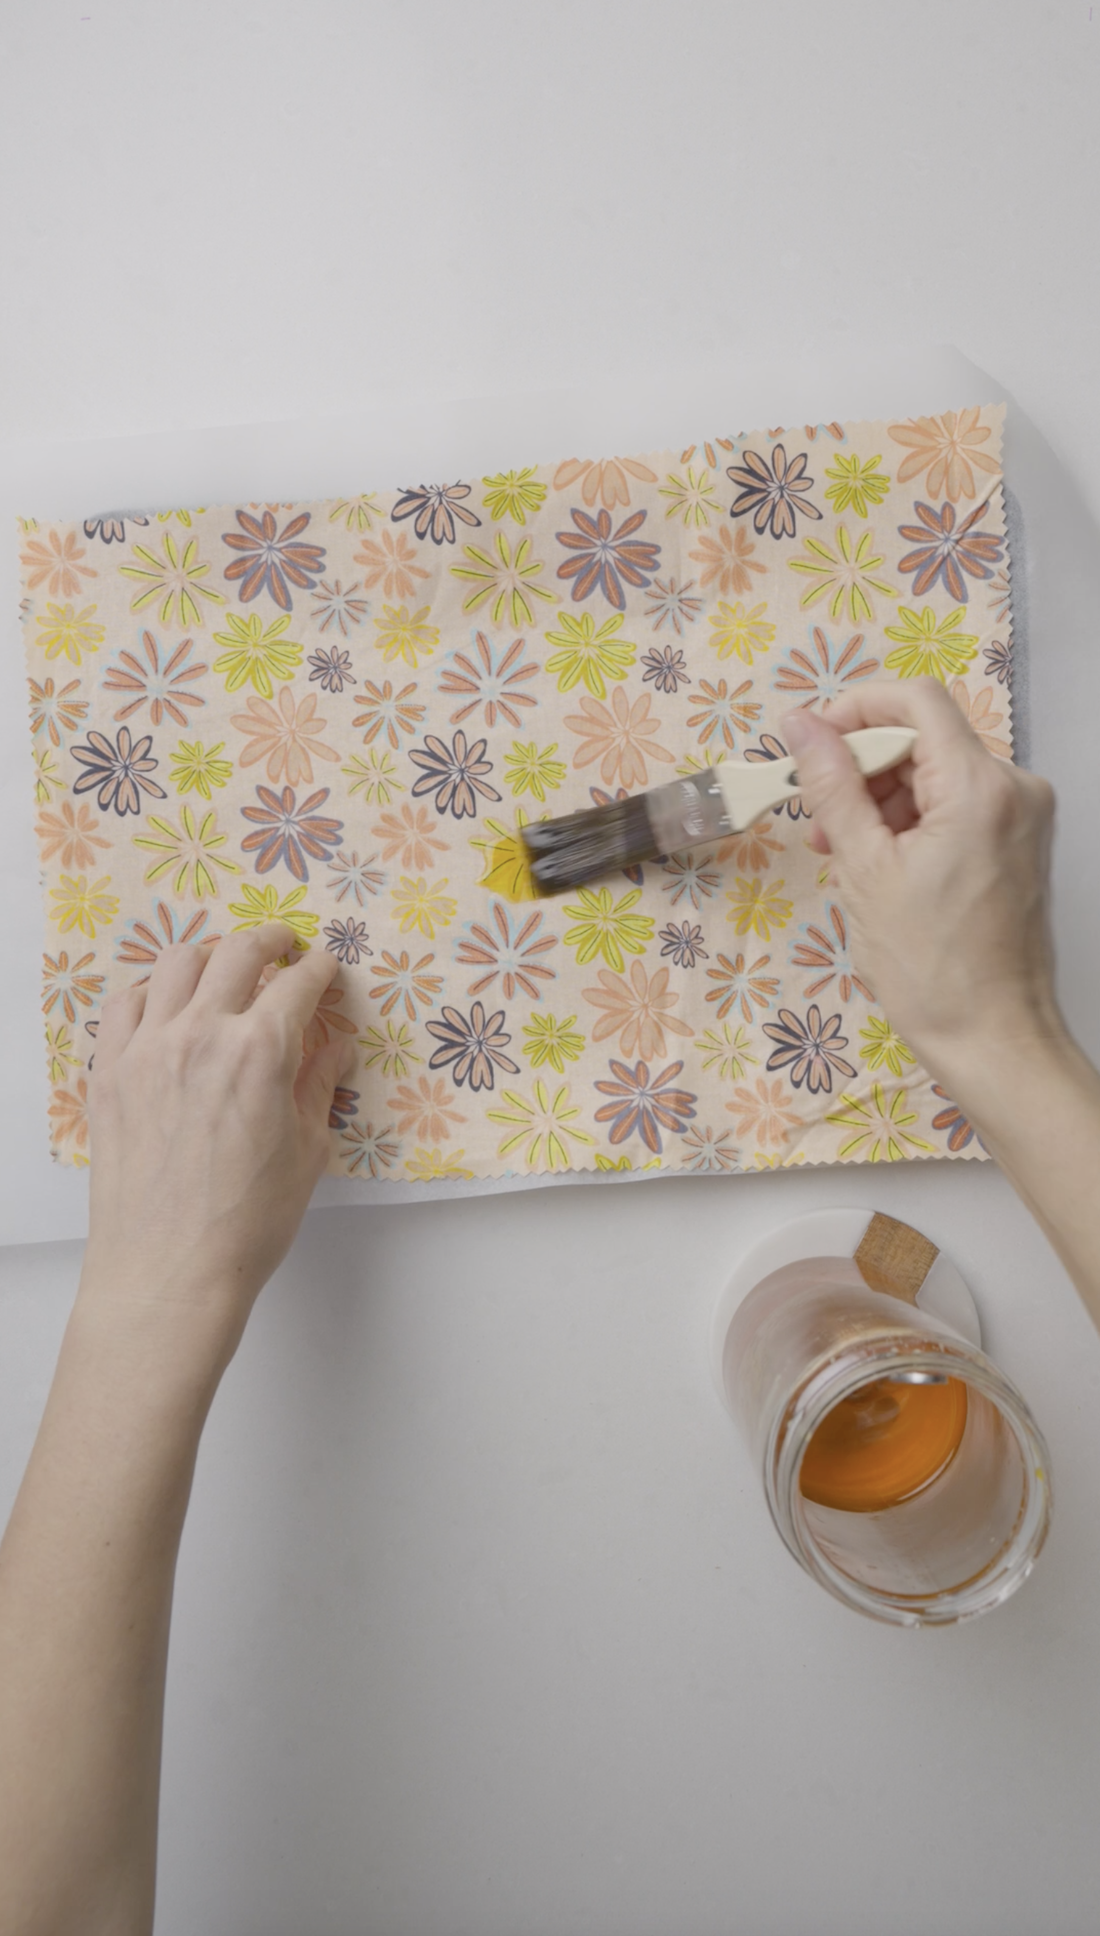 Paint fabric with beeswax mixture